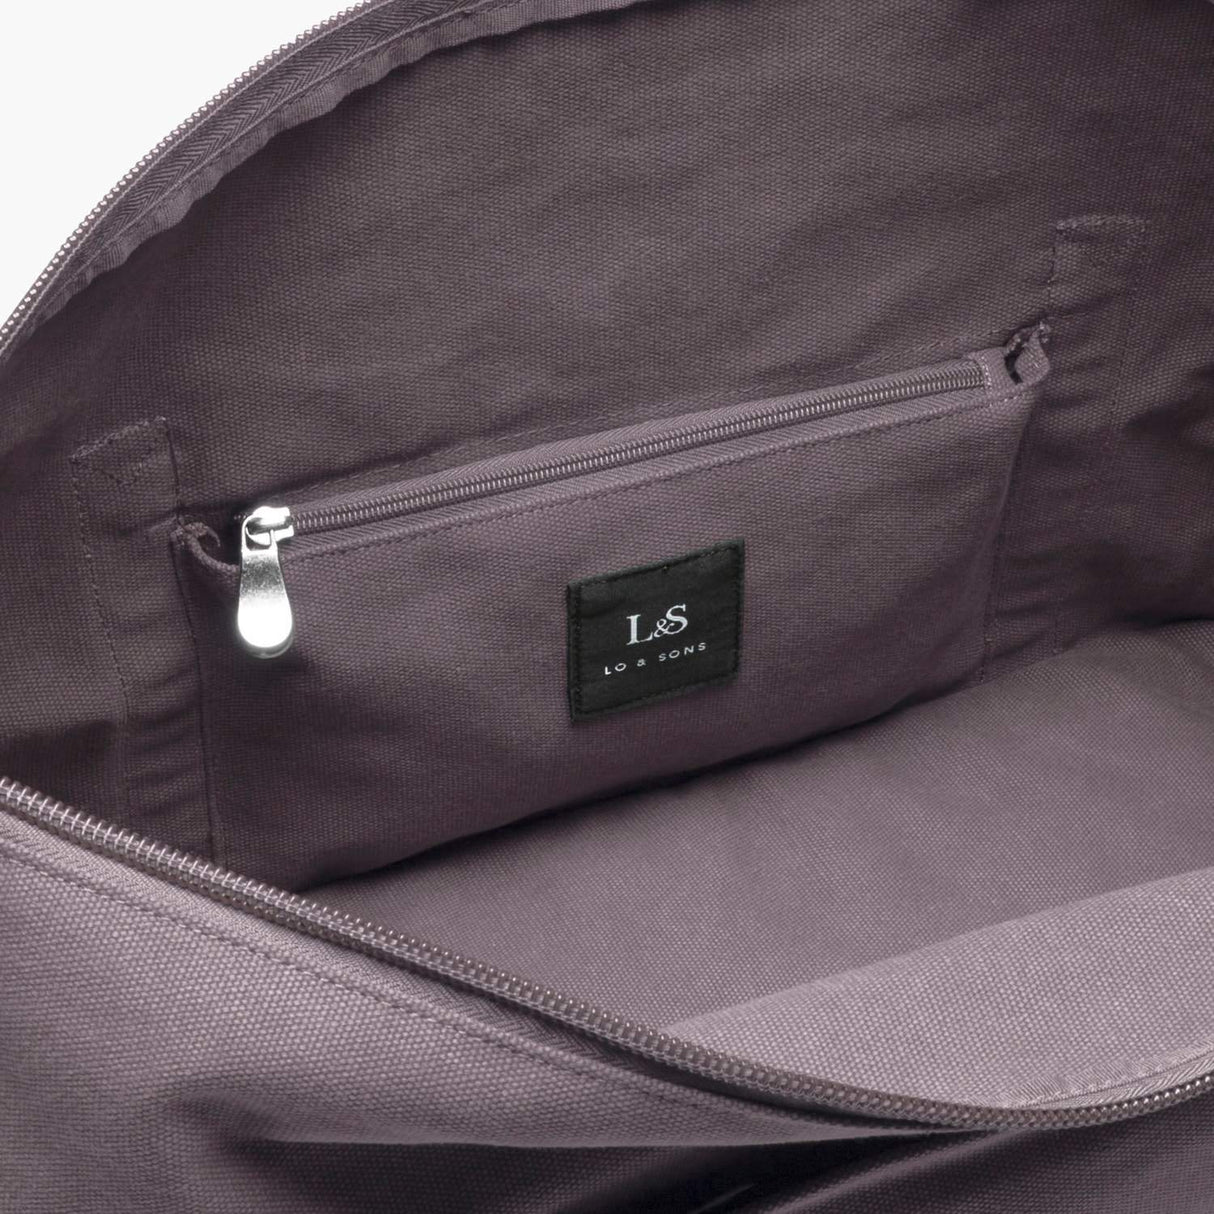 Interior Zip Pocket - The Catalina Deluxe - Washed Canvas - Thistle - Weekender - Lo & Sons